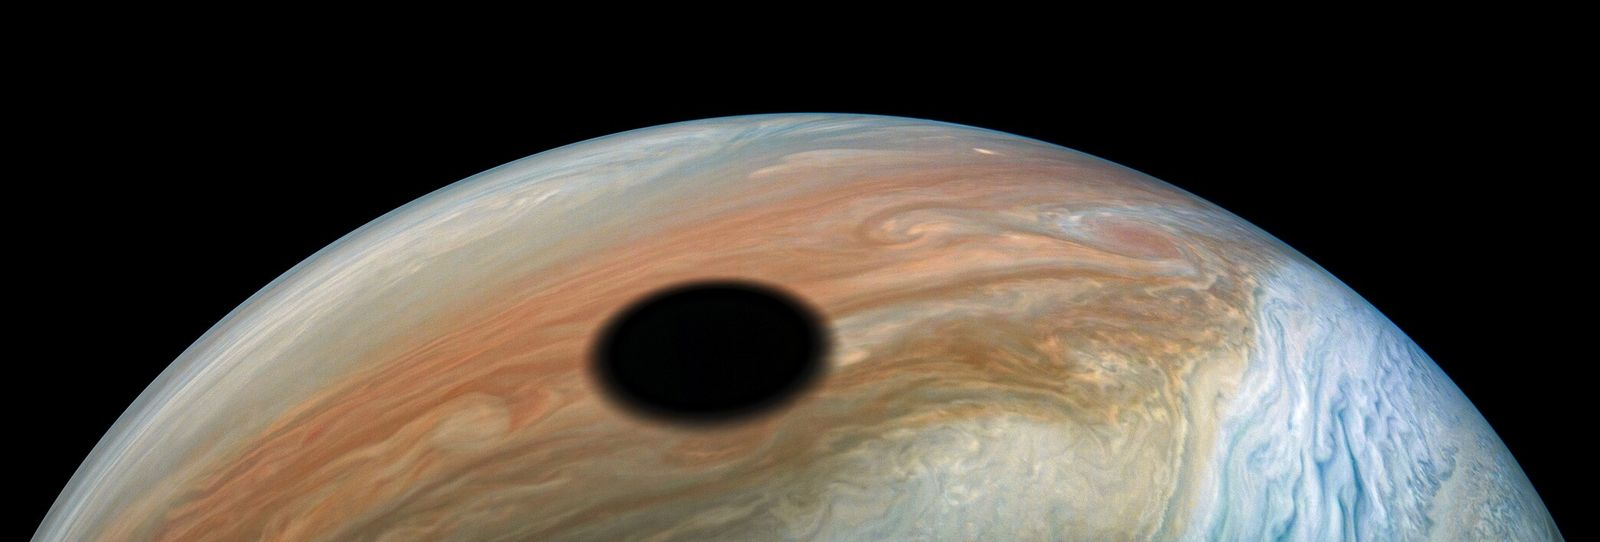 Jupiter's moon Io—a volcano world orbiting the planet once every 42 hours—casts its shadow on the ...